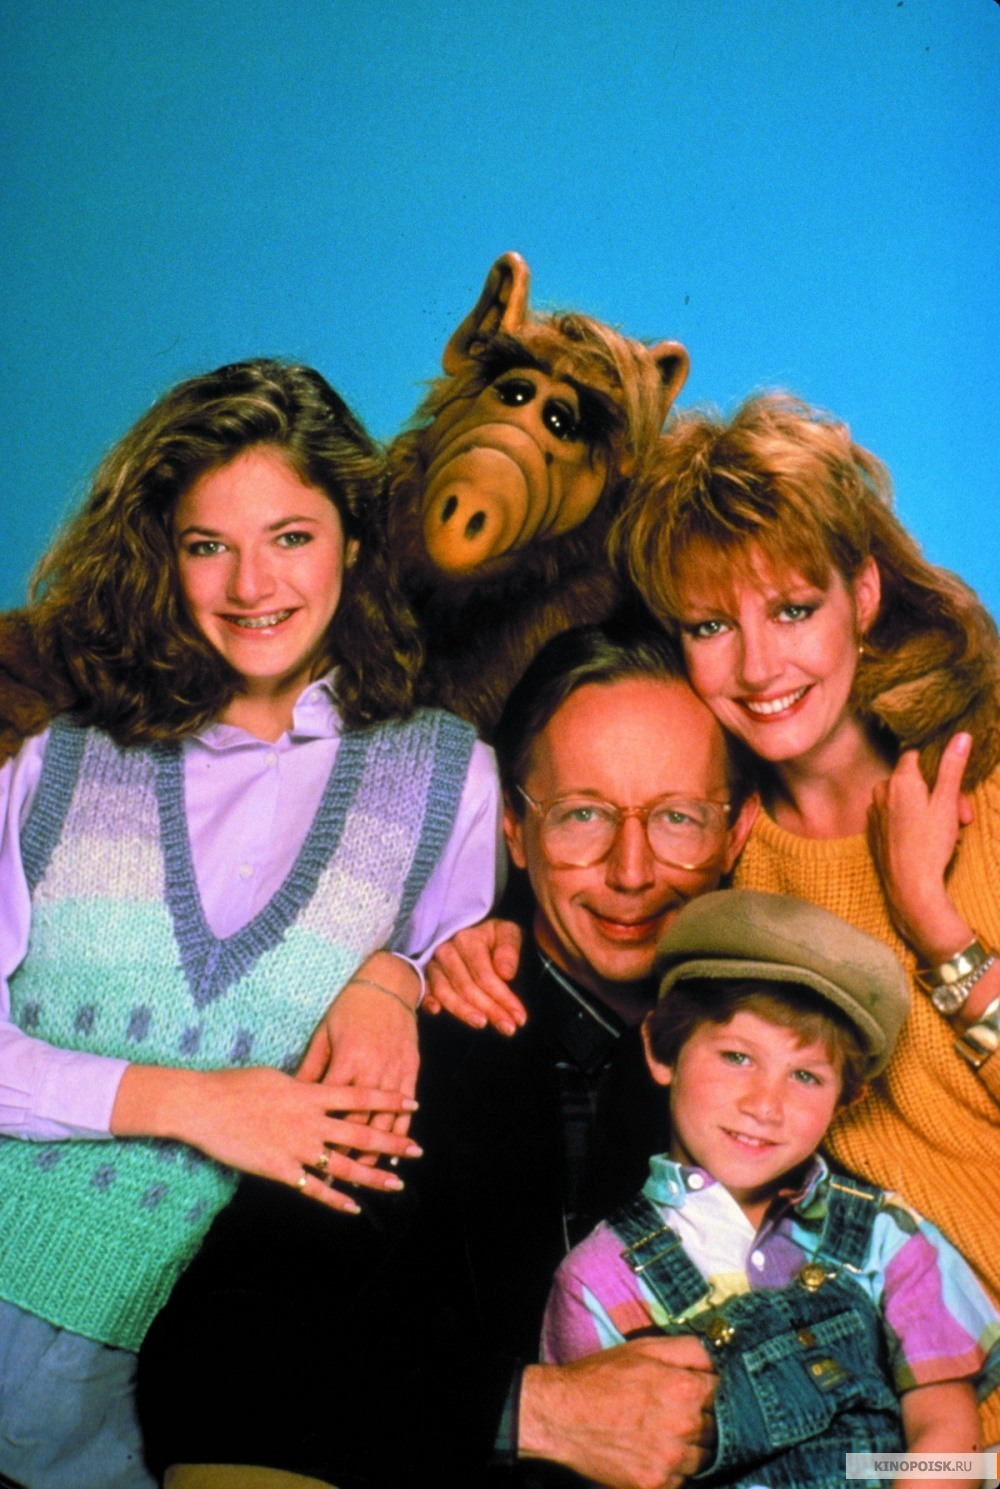 ALF: Annoying, Lunatic, Funny